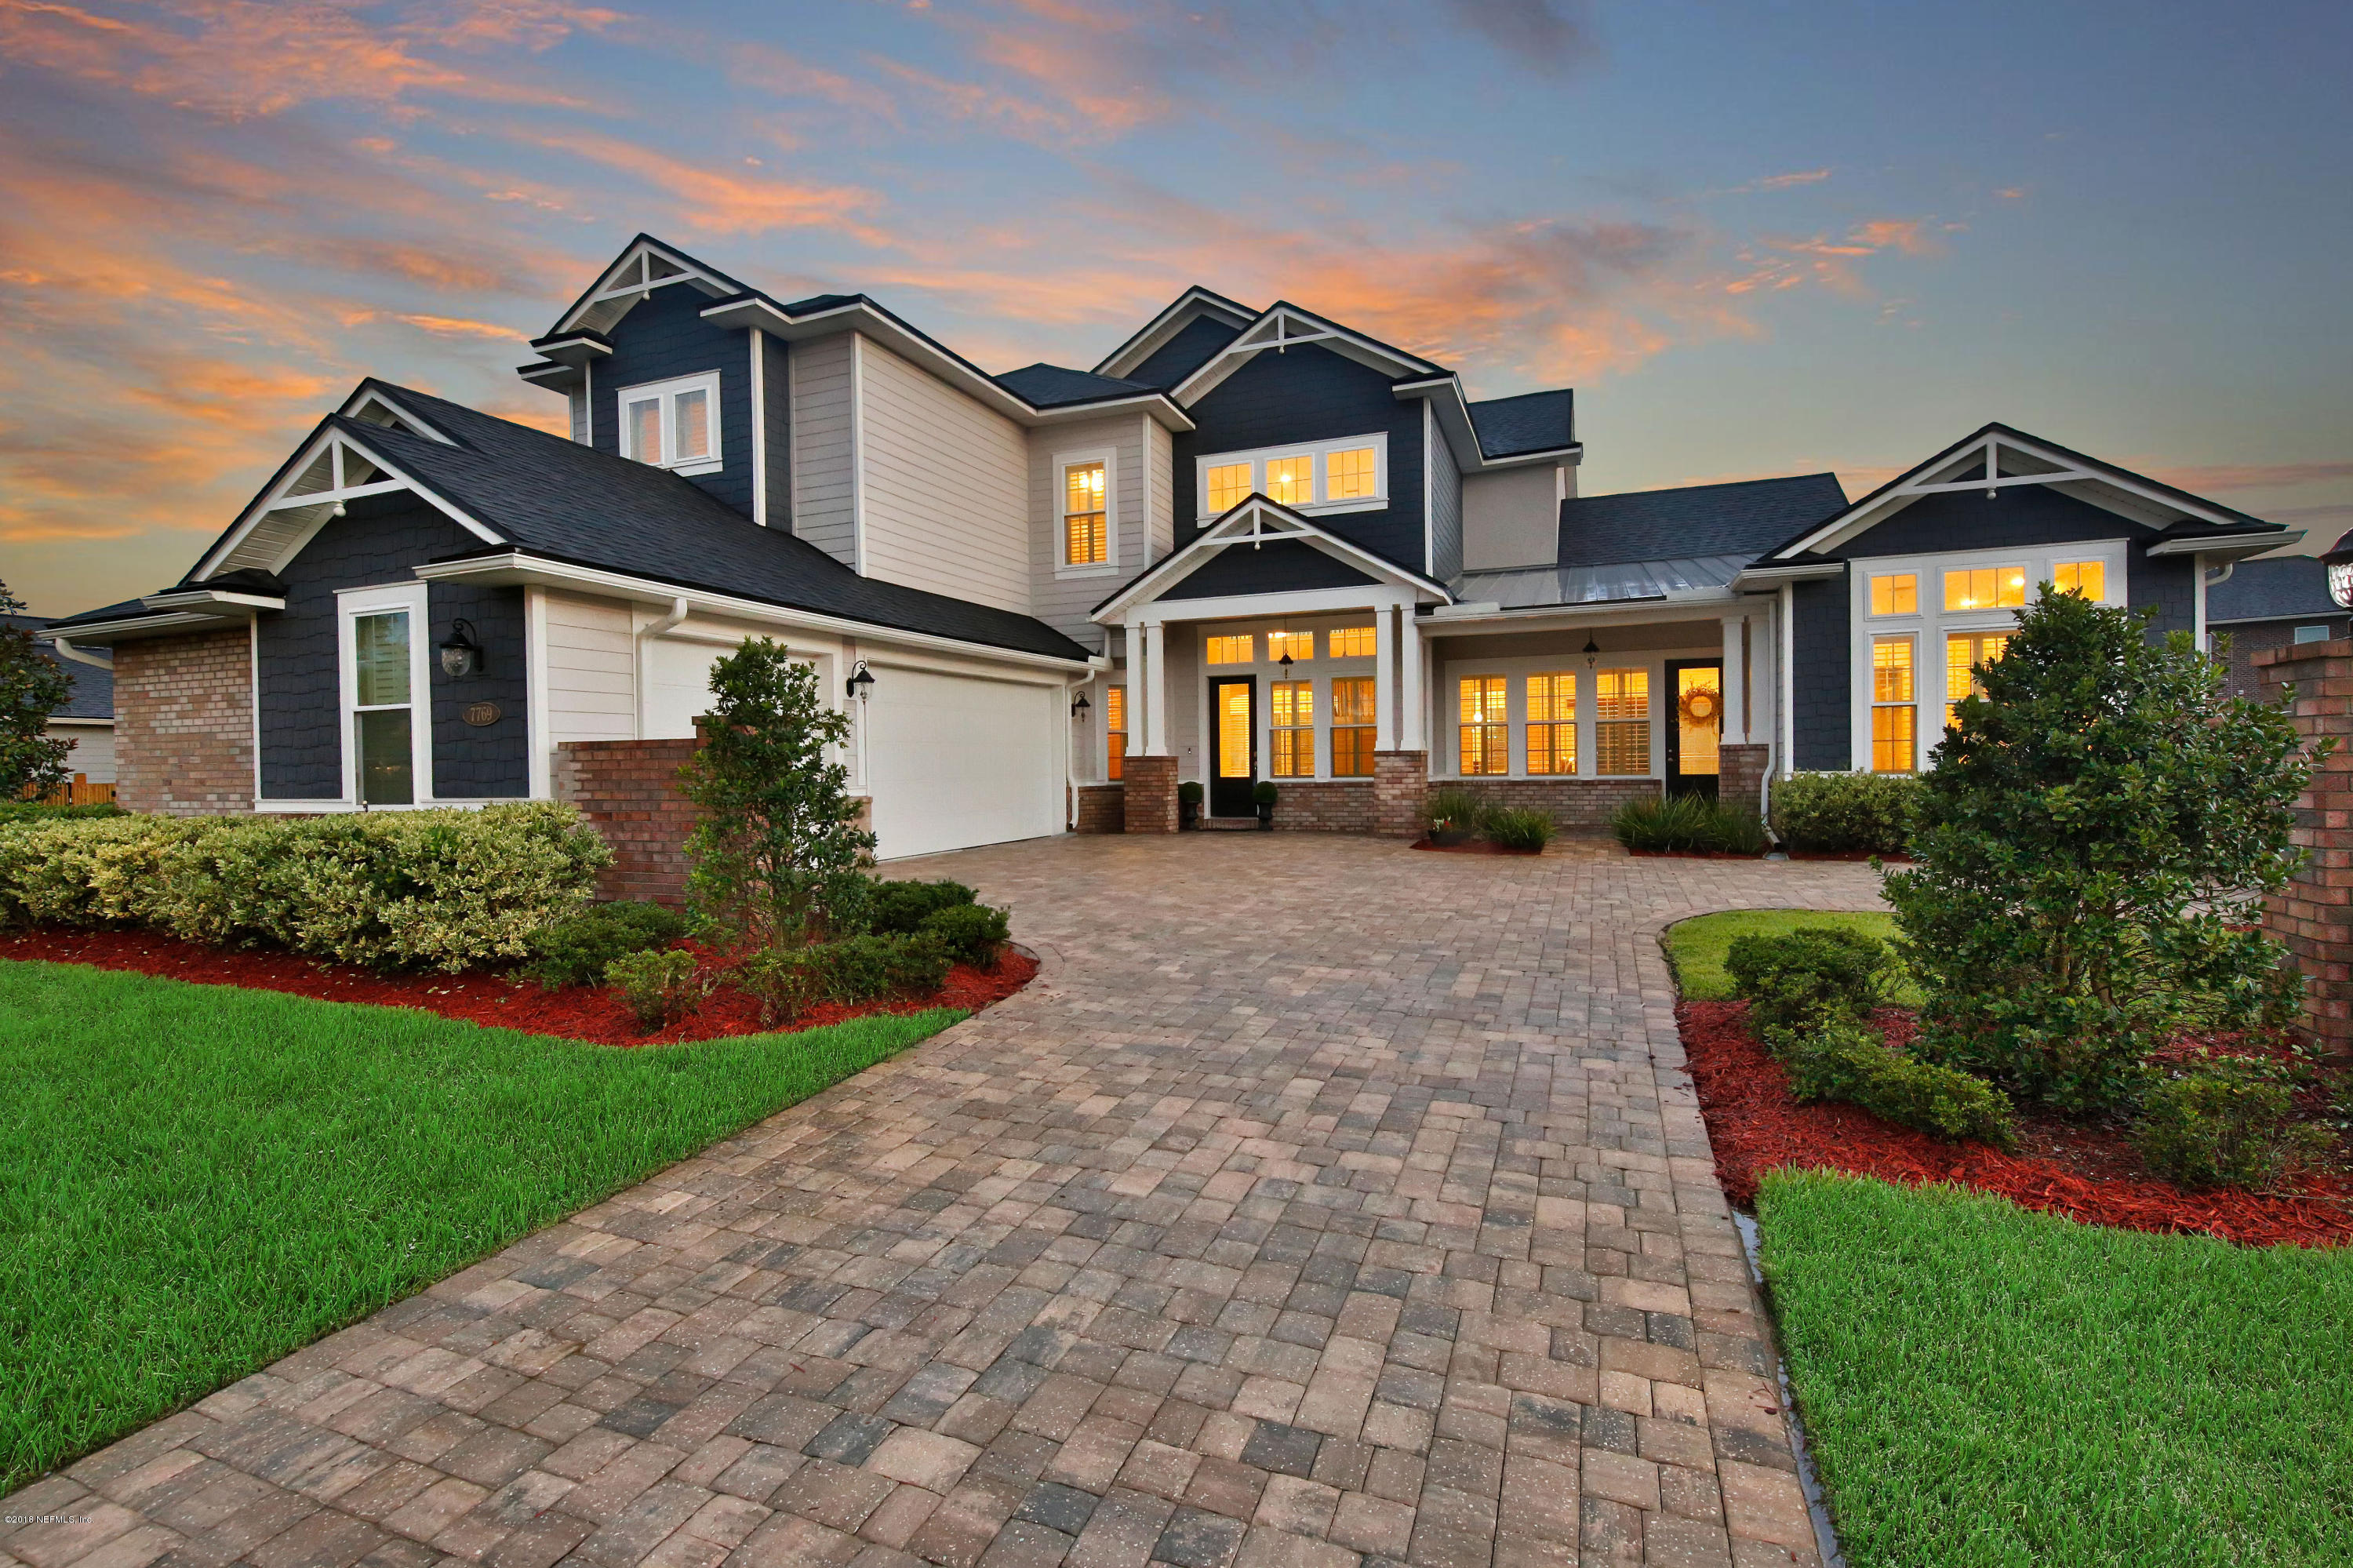 7769 COLLINS GROVE, JACKSONVILLE, FLORIDA 32256, 5 Bedrooms Bedrooms, ,4 BathroomsBathrooms,Residential - single family,For sale,COLLINS GROVE,948178